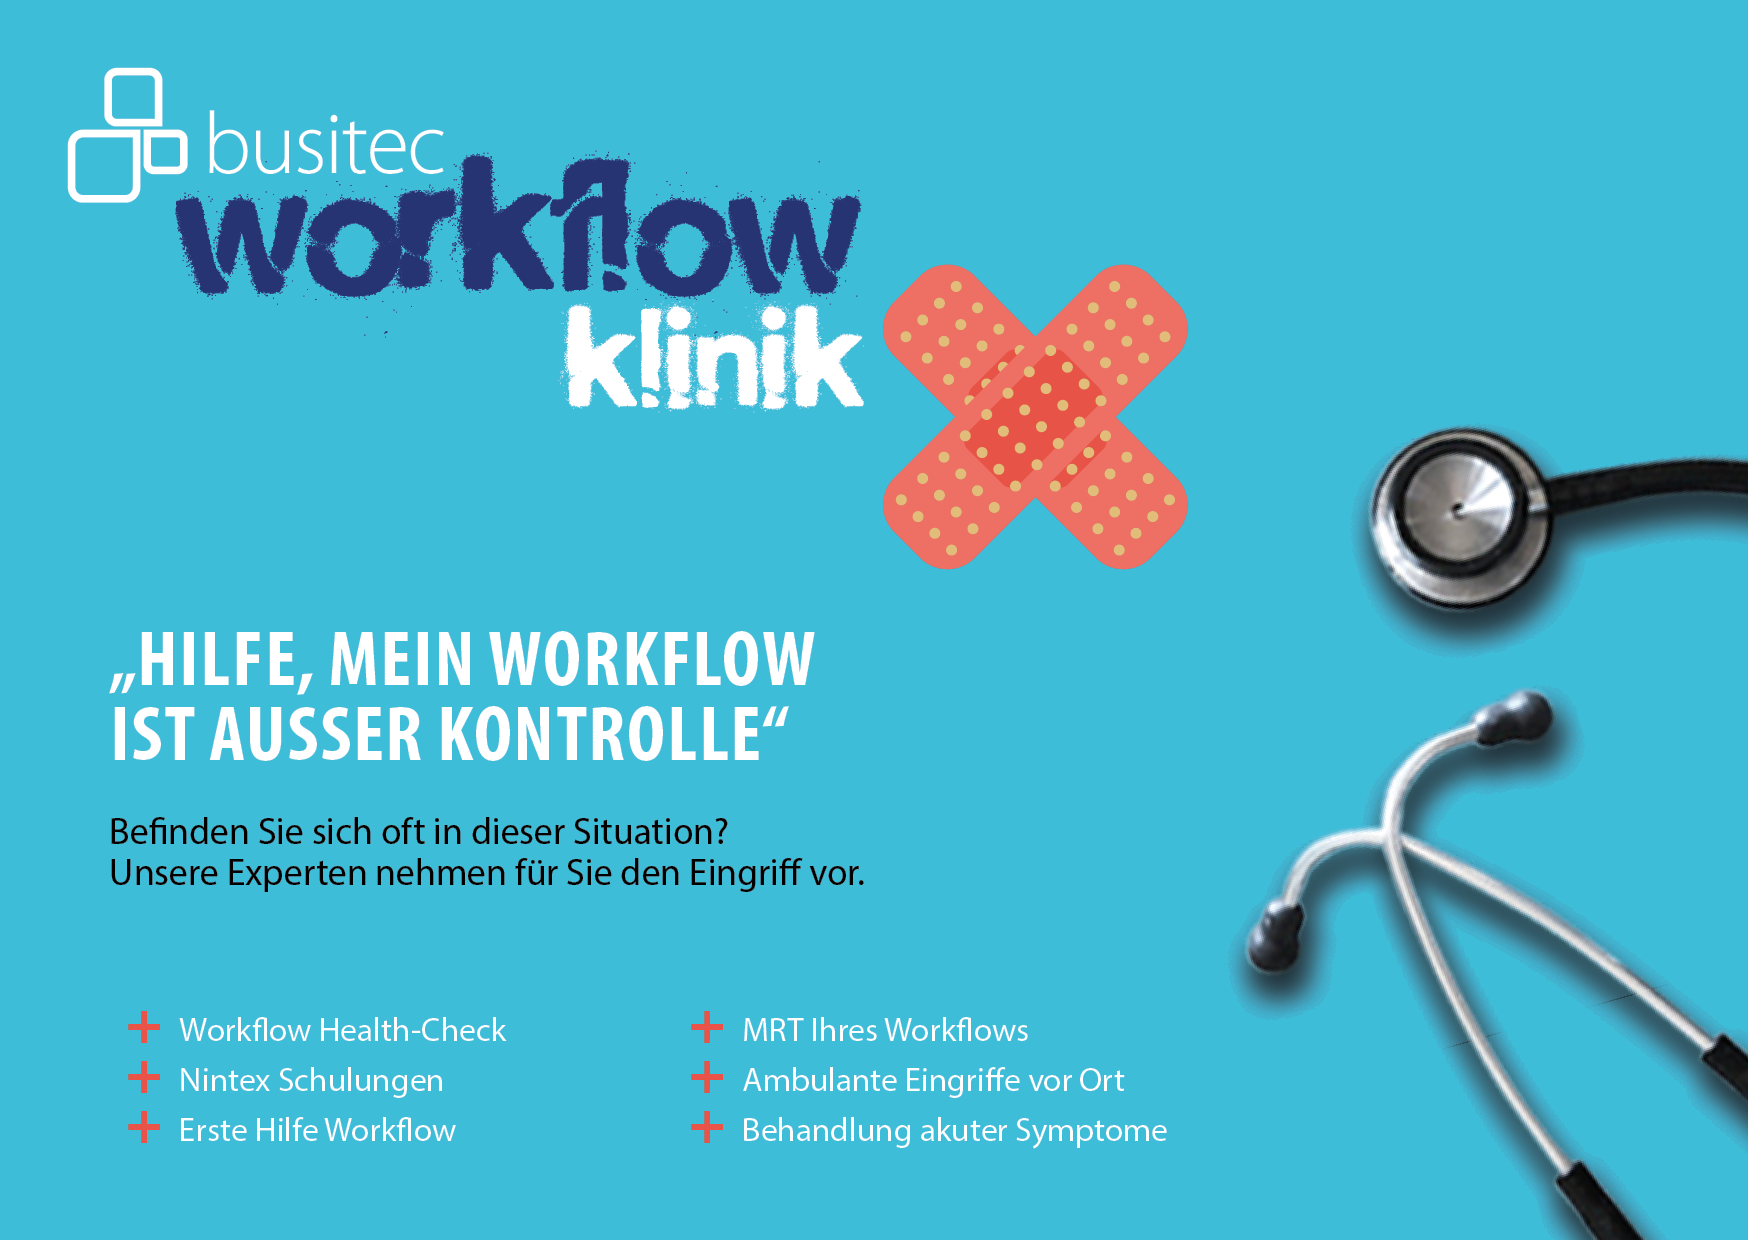 busitec workflow klinik